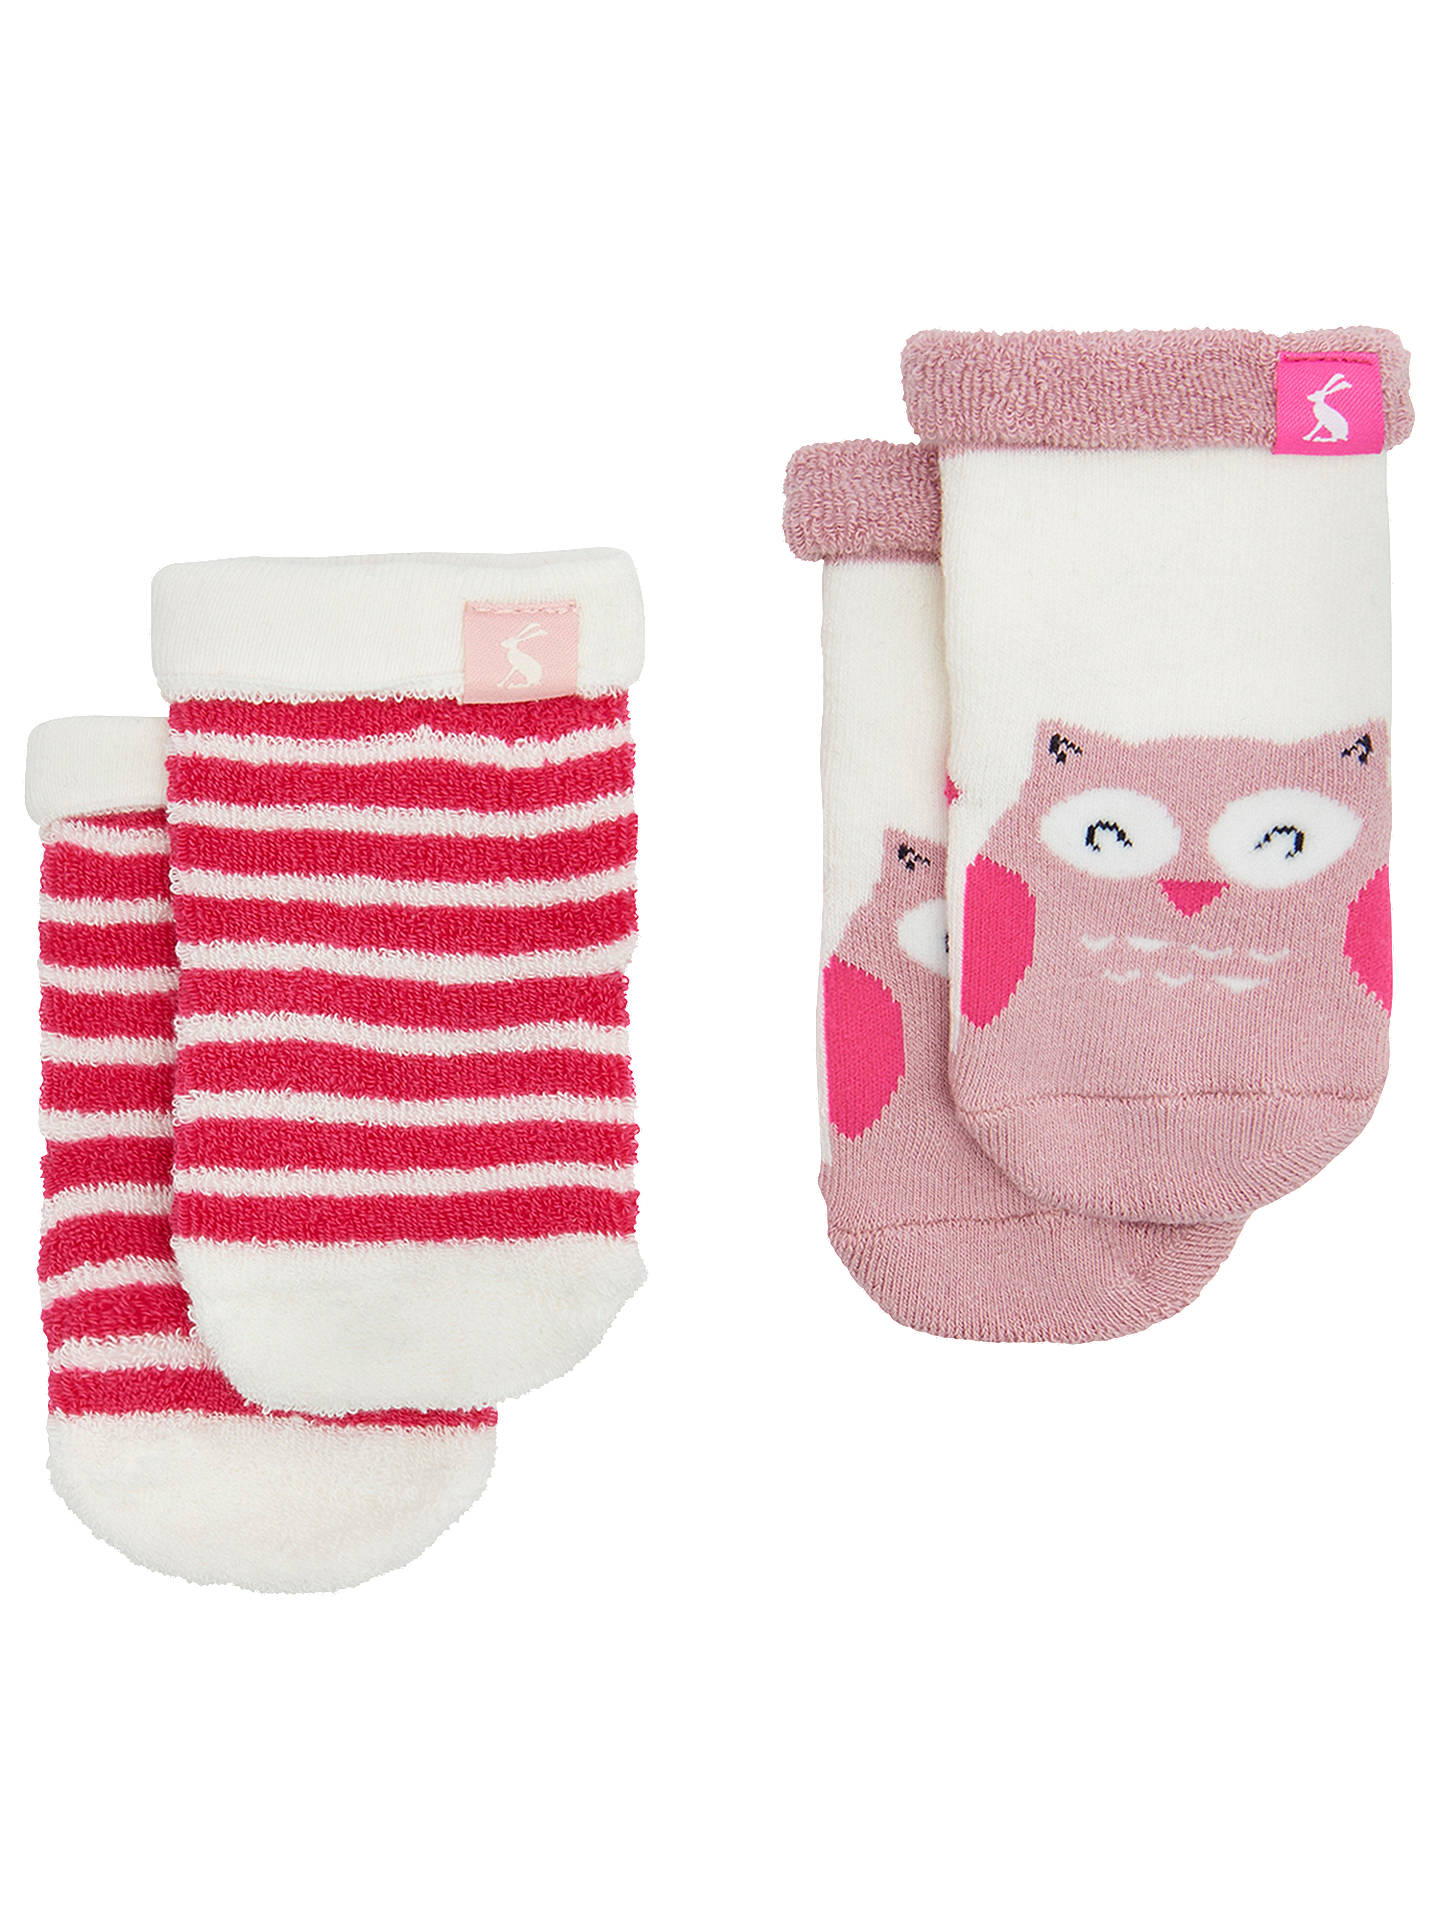 Buy Baby Joule Terry Owl Socks, Pack of 2, Pink, 0-6 months Online at johnlewis.com